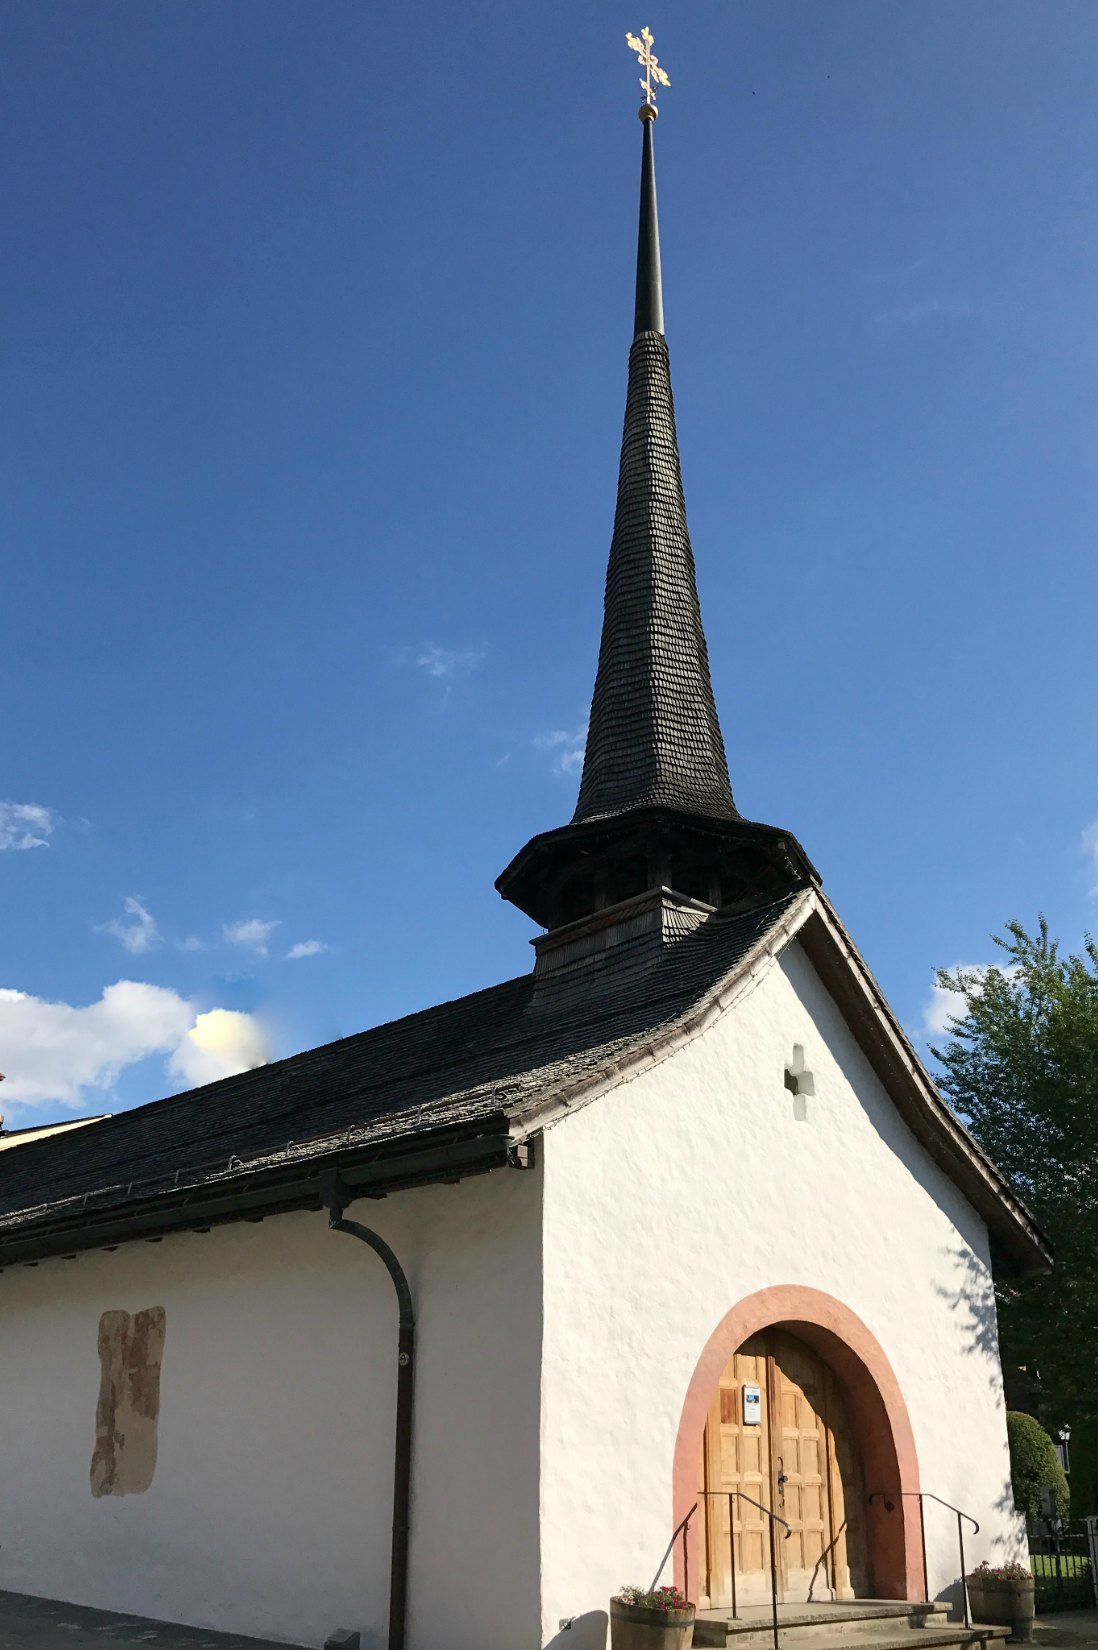 Nikolauskapelle in Gstaad